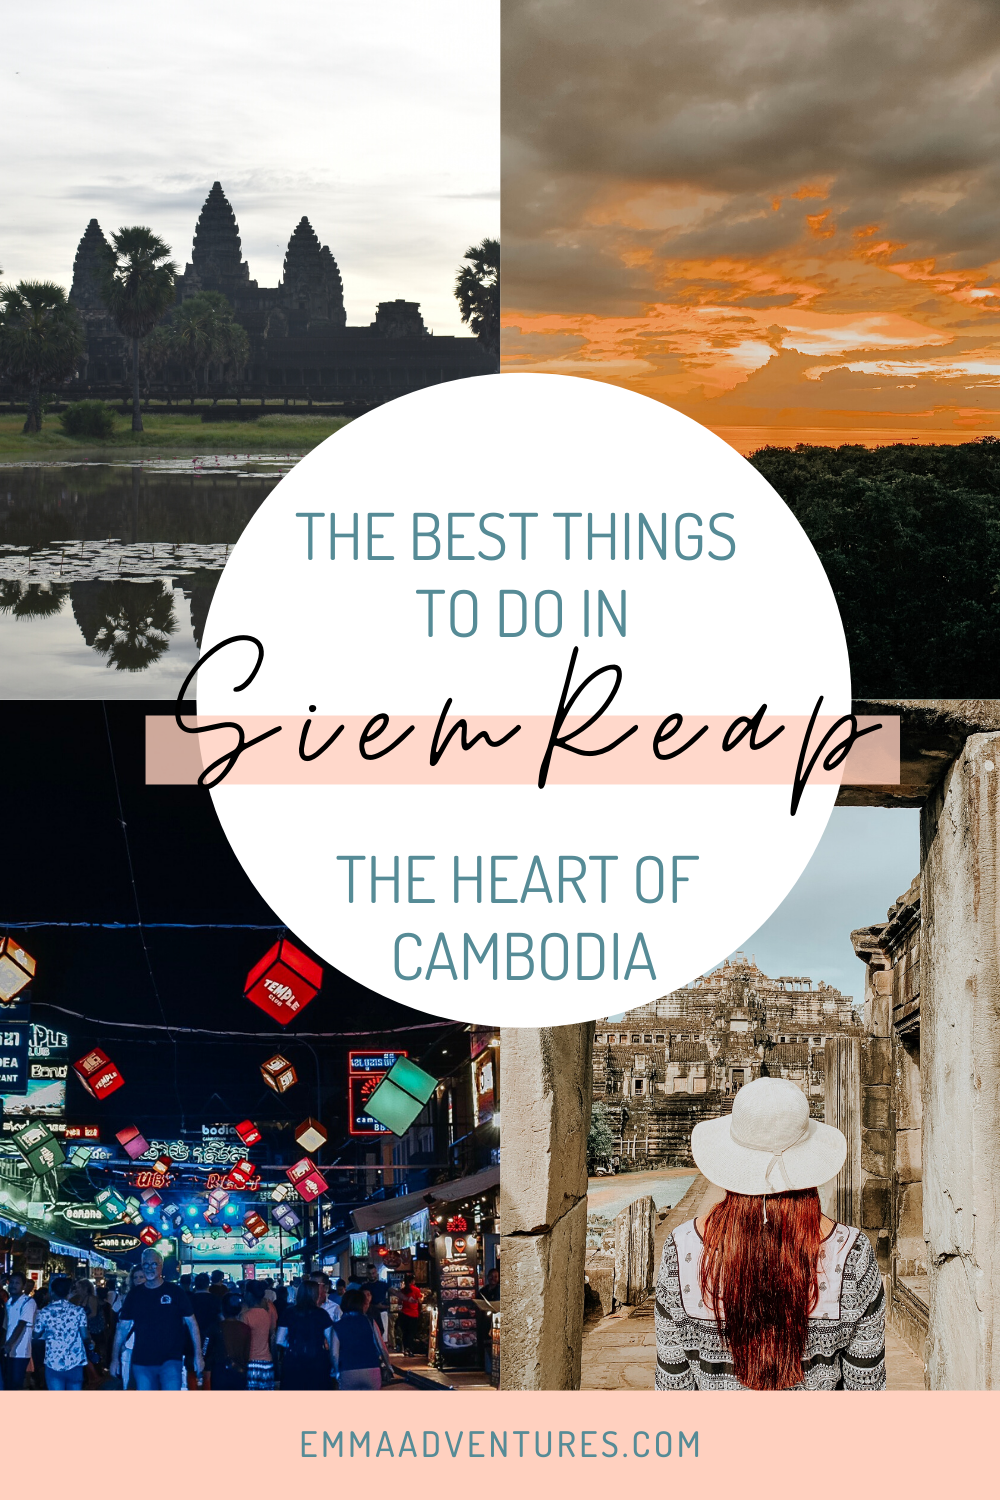 The ultimate Siem Reap travel guide has everything you need to know about travel in Siem Reap, Cambodia! The best things to see and do in Siem Reap, where to eat, drink and stay, plus Cambodia travel tips! Read it now!